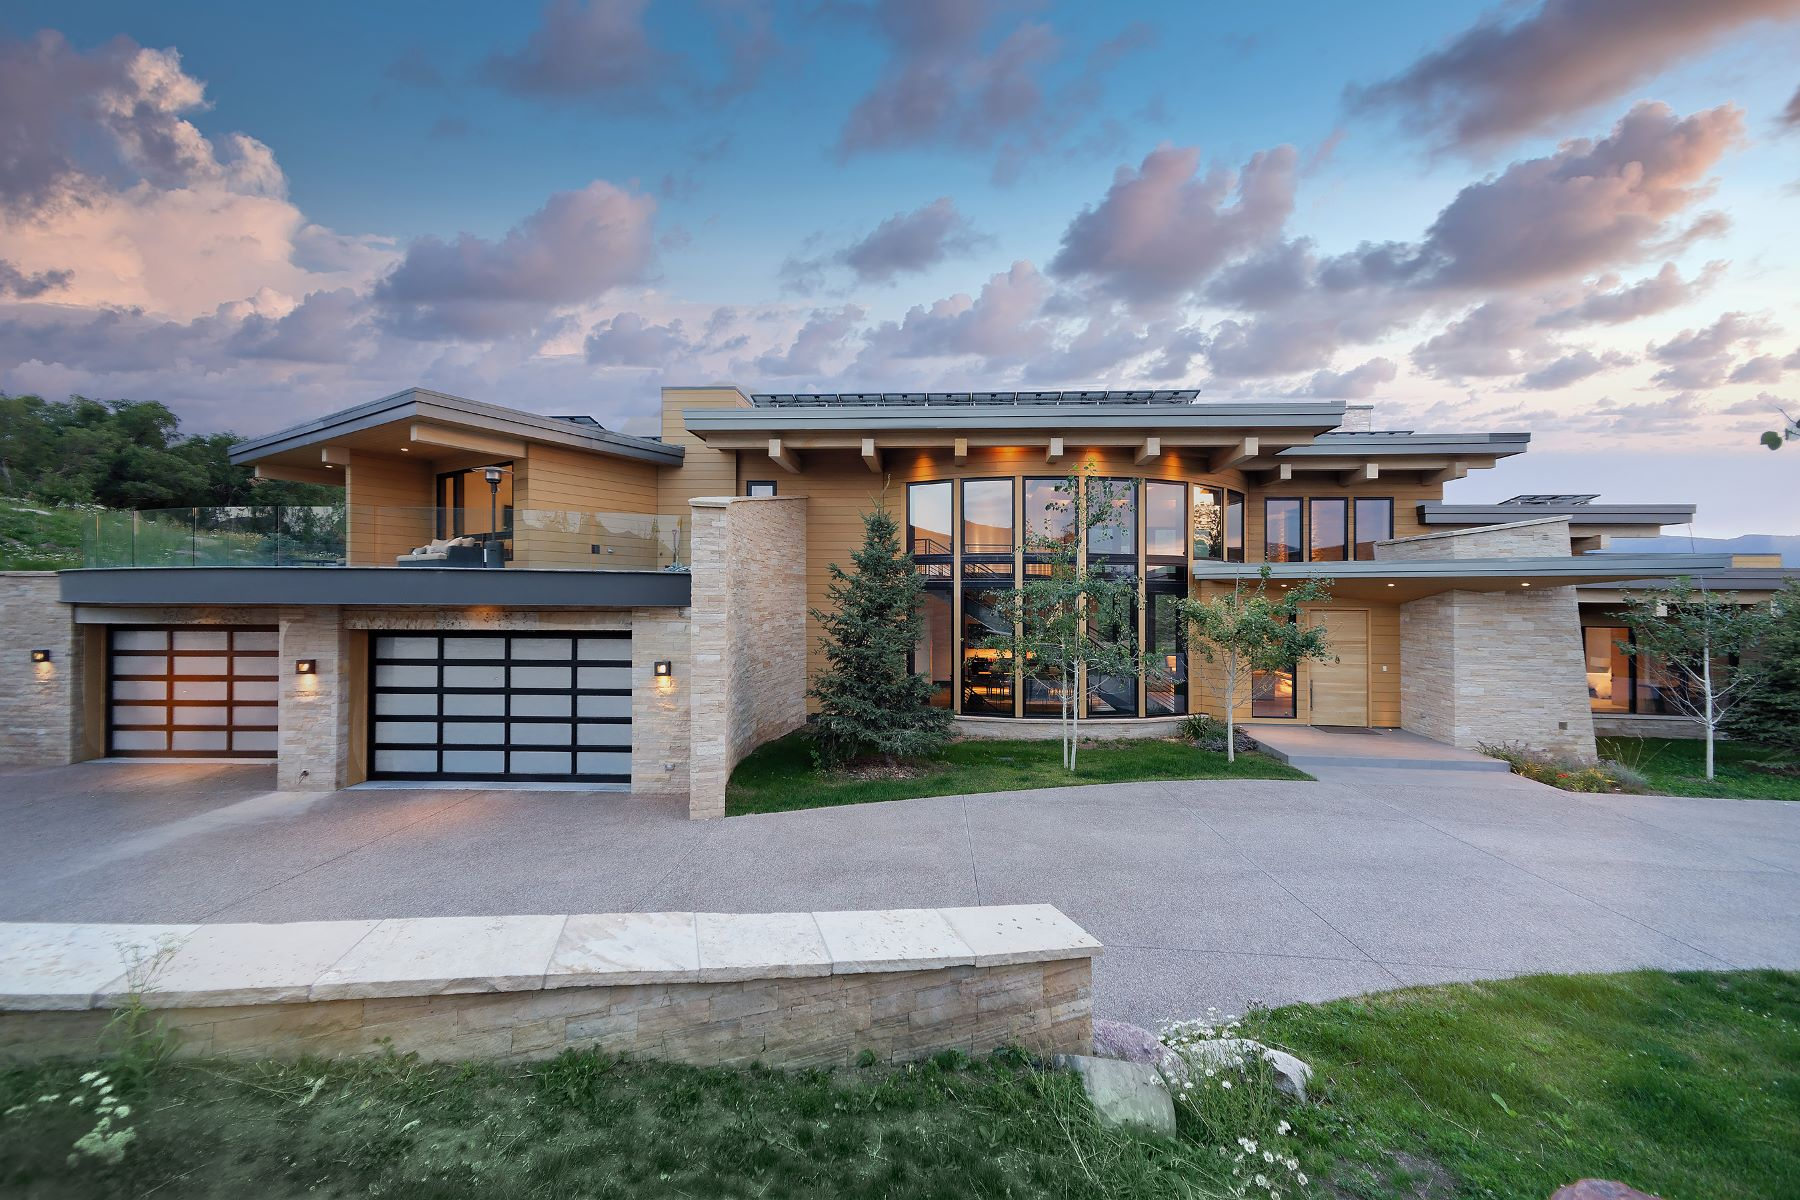 Single Family Homes for Sale at West Buttermilk Masterpiece 1422 West Buttermilk Road Aspen, Colorado 81611 United States